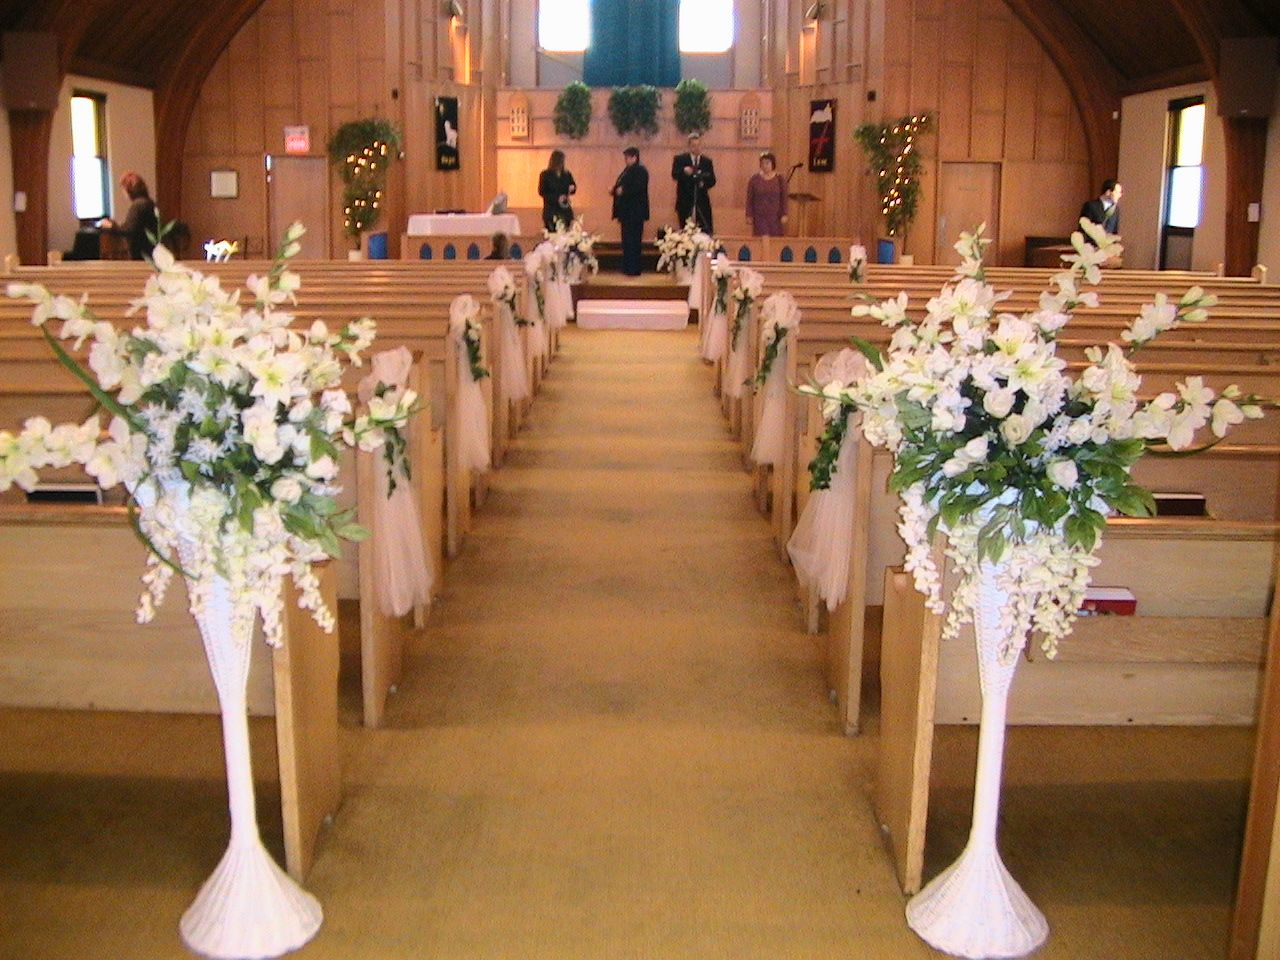 Wedding Decorations For Church Download Wedding Church Decorations Uk Concepts Id Church Wedding Decorations Diy Wedding Decorations Uk Lantern Decor Wedding